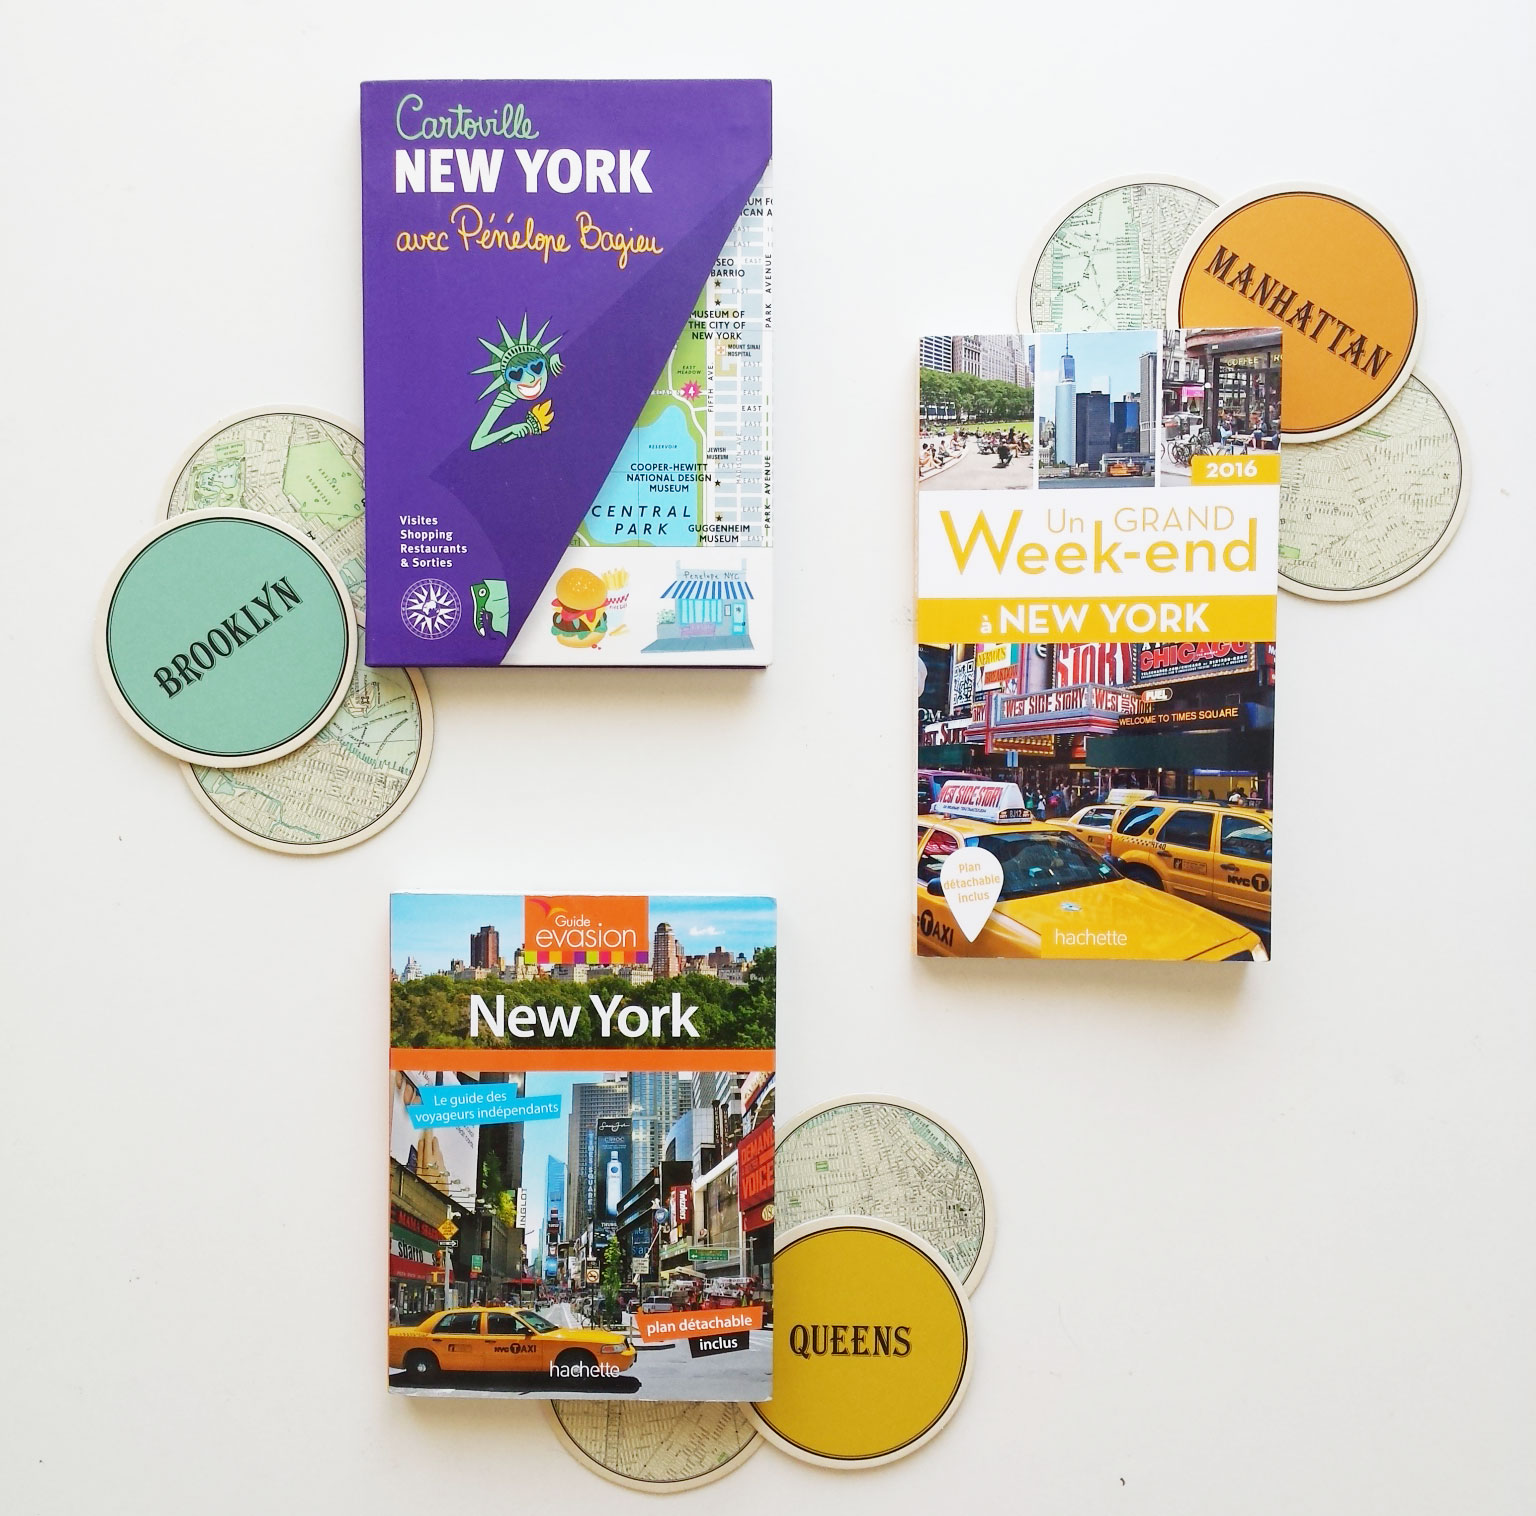 Guides de tourisme New York